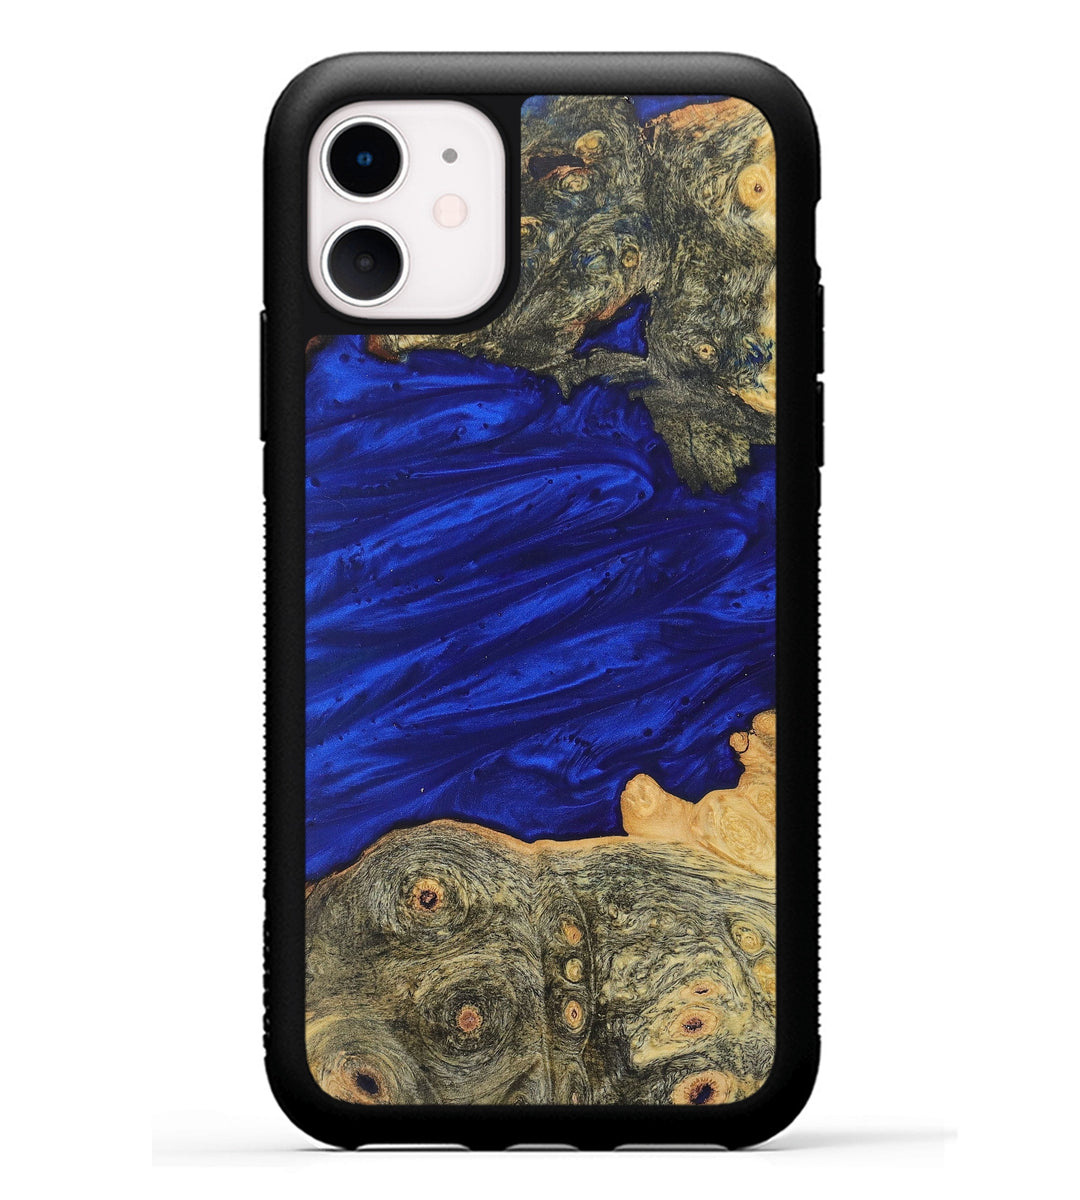 iPhone 11 Wood+Resin Phone Case - Holly (Dark Blue, 368216)